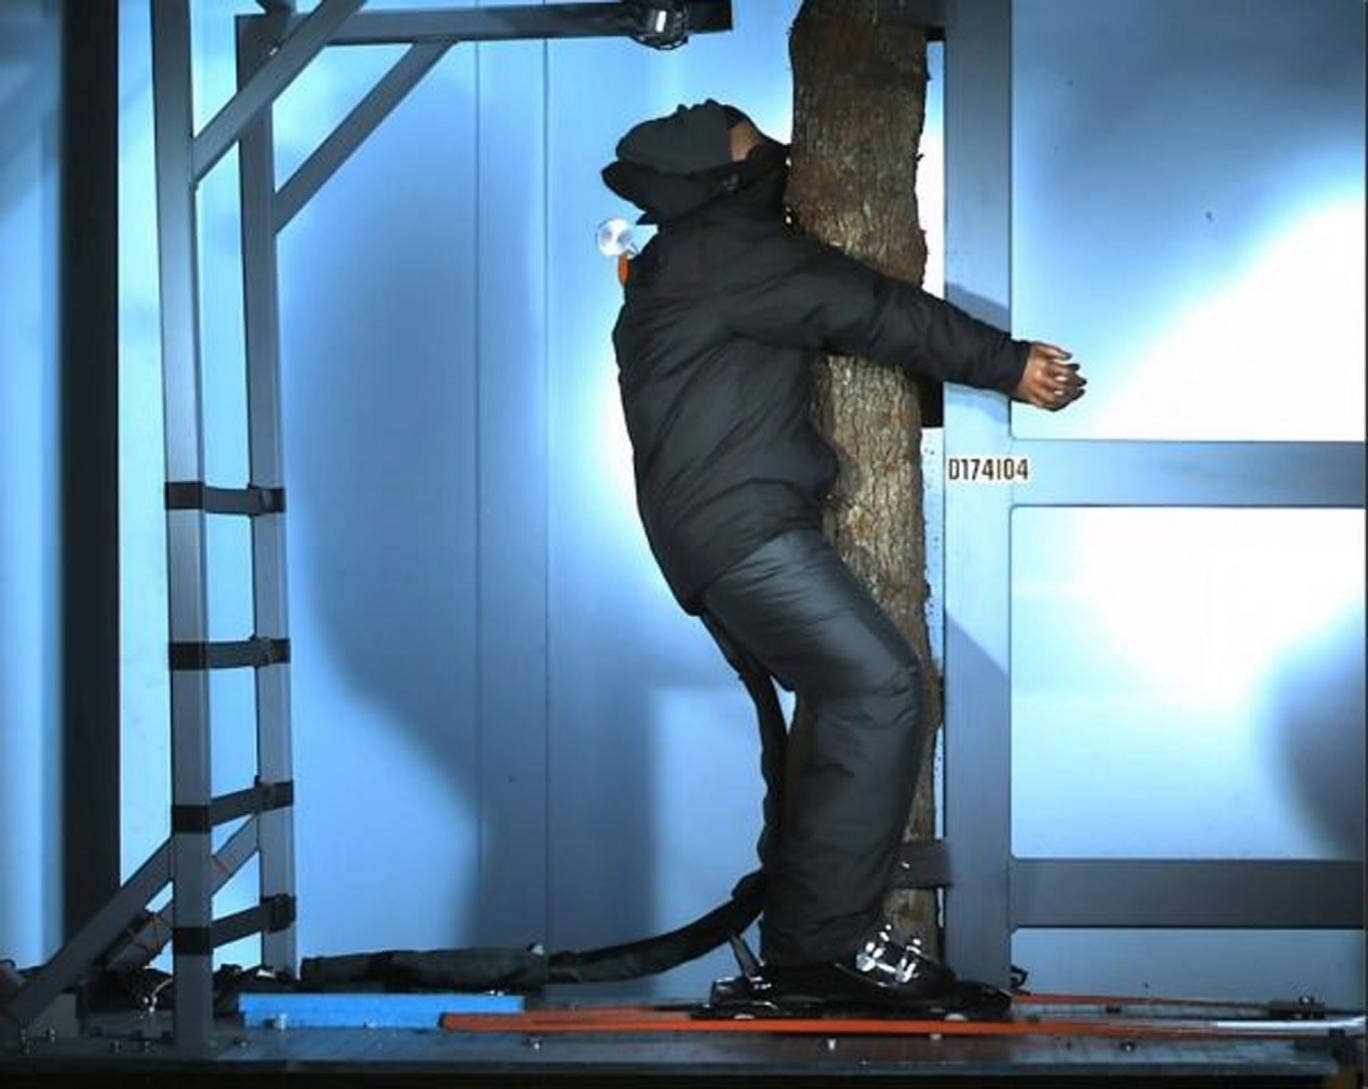 Direct Line's ski helmet research put crash-test dummies on a collision course with a tree